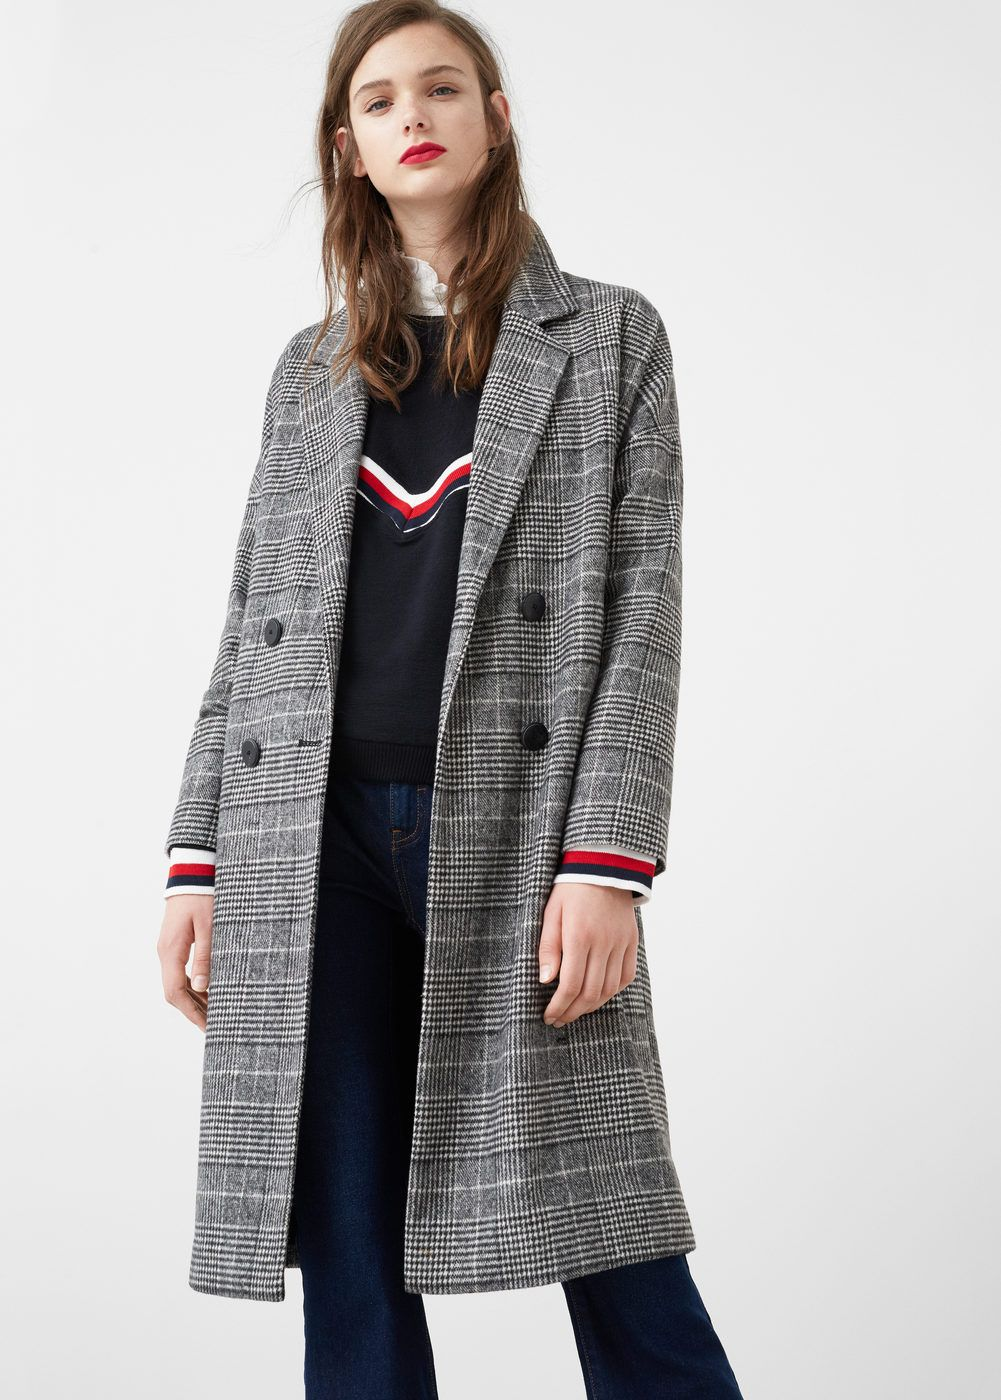 Prince of wales coat | Coats and Grunge